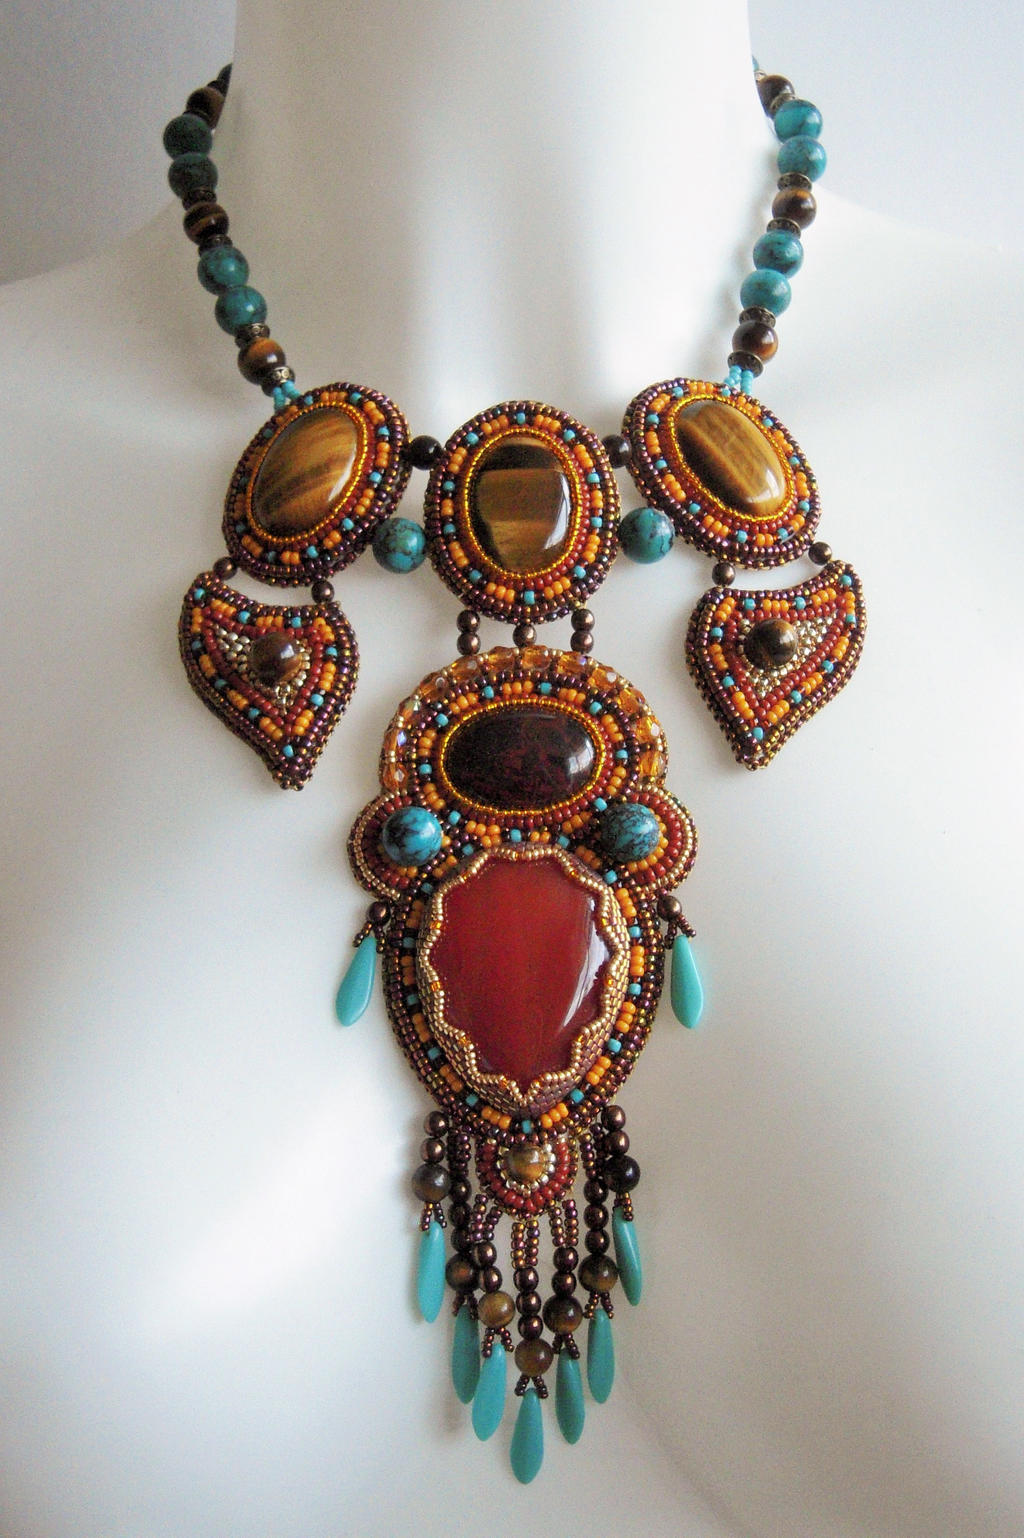 Bead Embroidery Necklace 21 By Priscillascreations On Deviantart